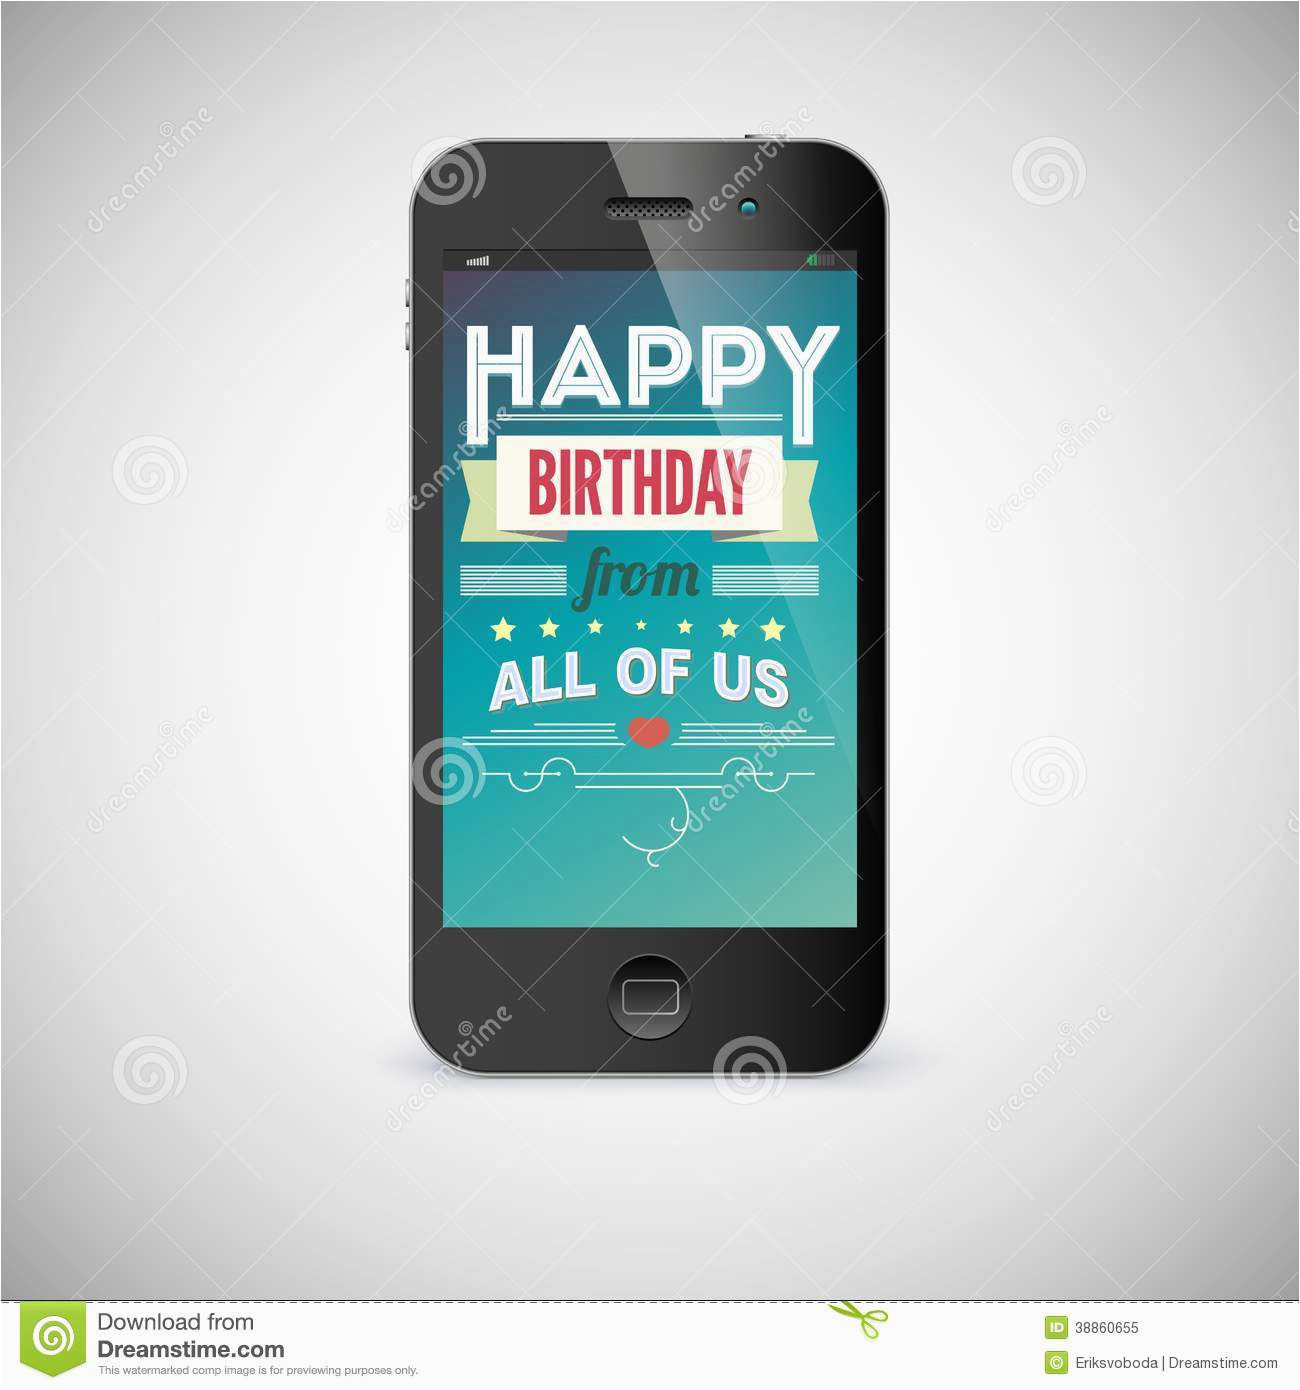 Mobile Birthday Cards Downloads Birthday Greeting Card On Screen Of Mobile Phone Stock